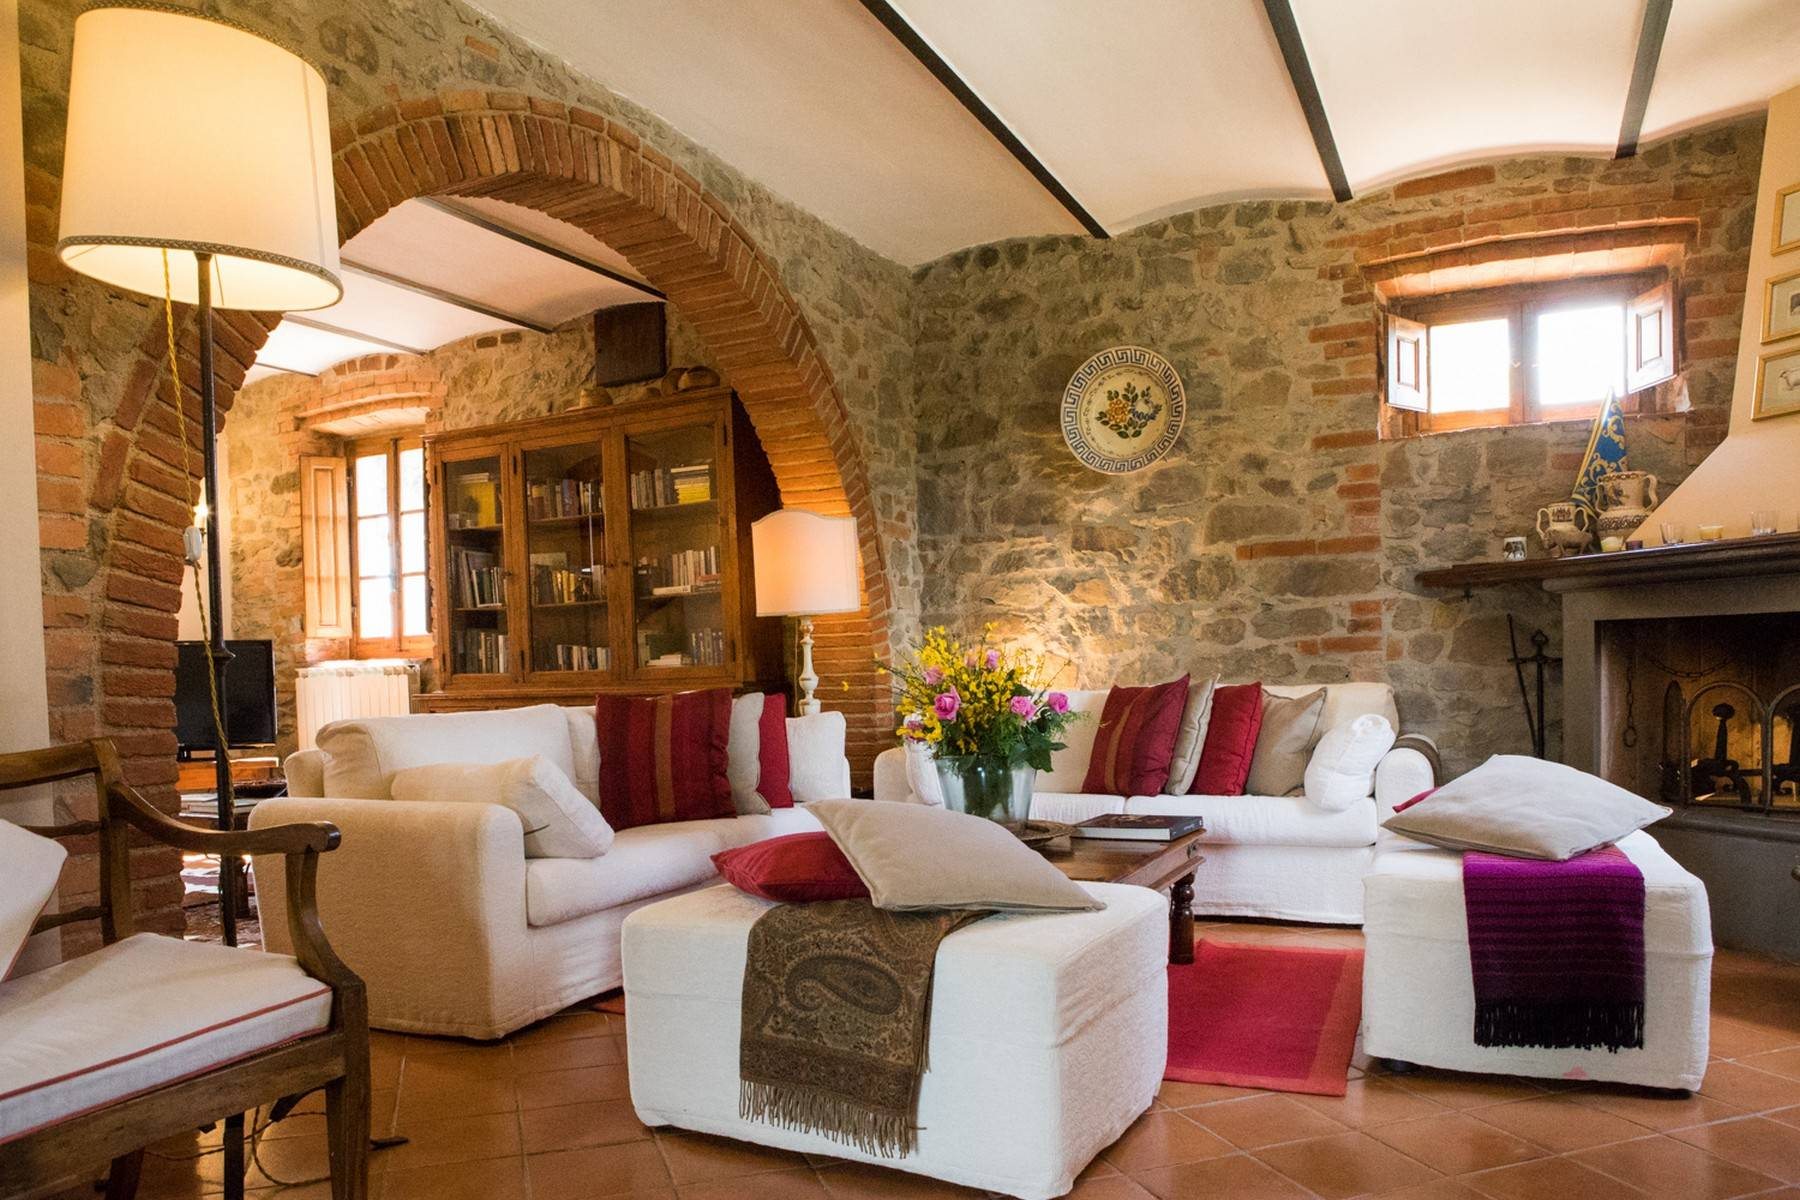 House in the Tuscan Hills for Sale - 6